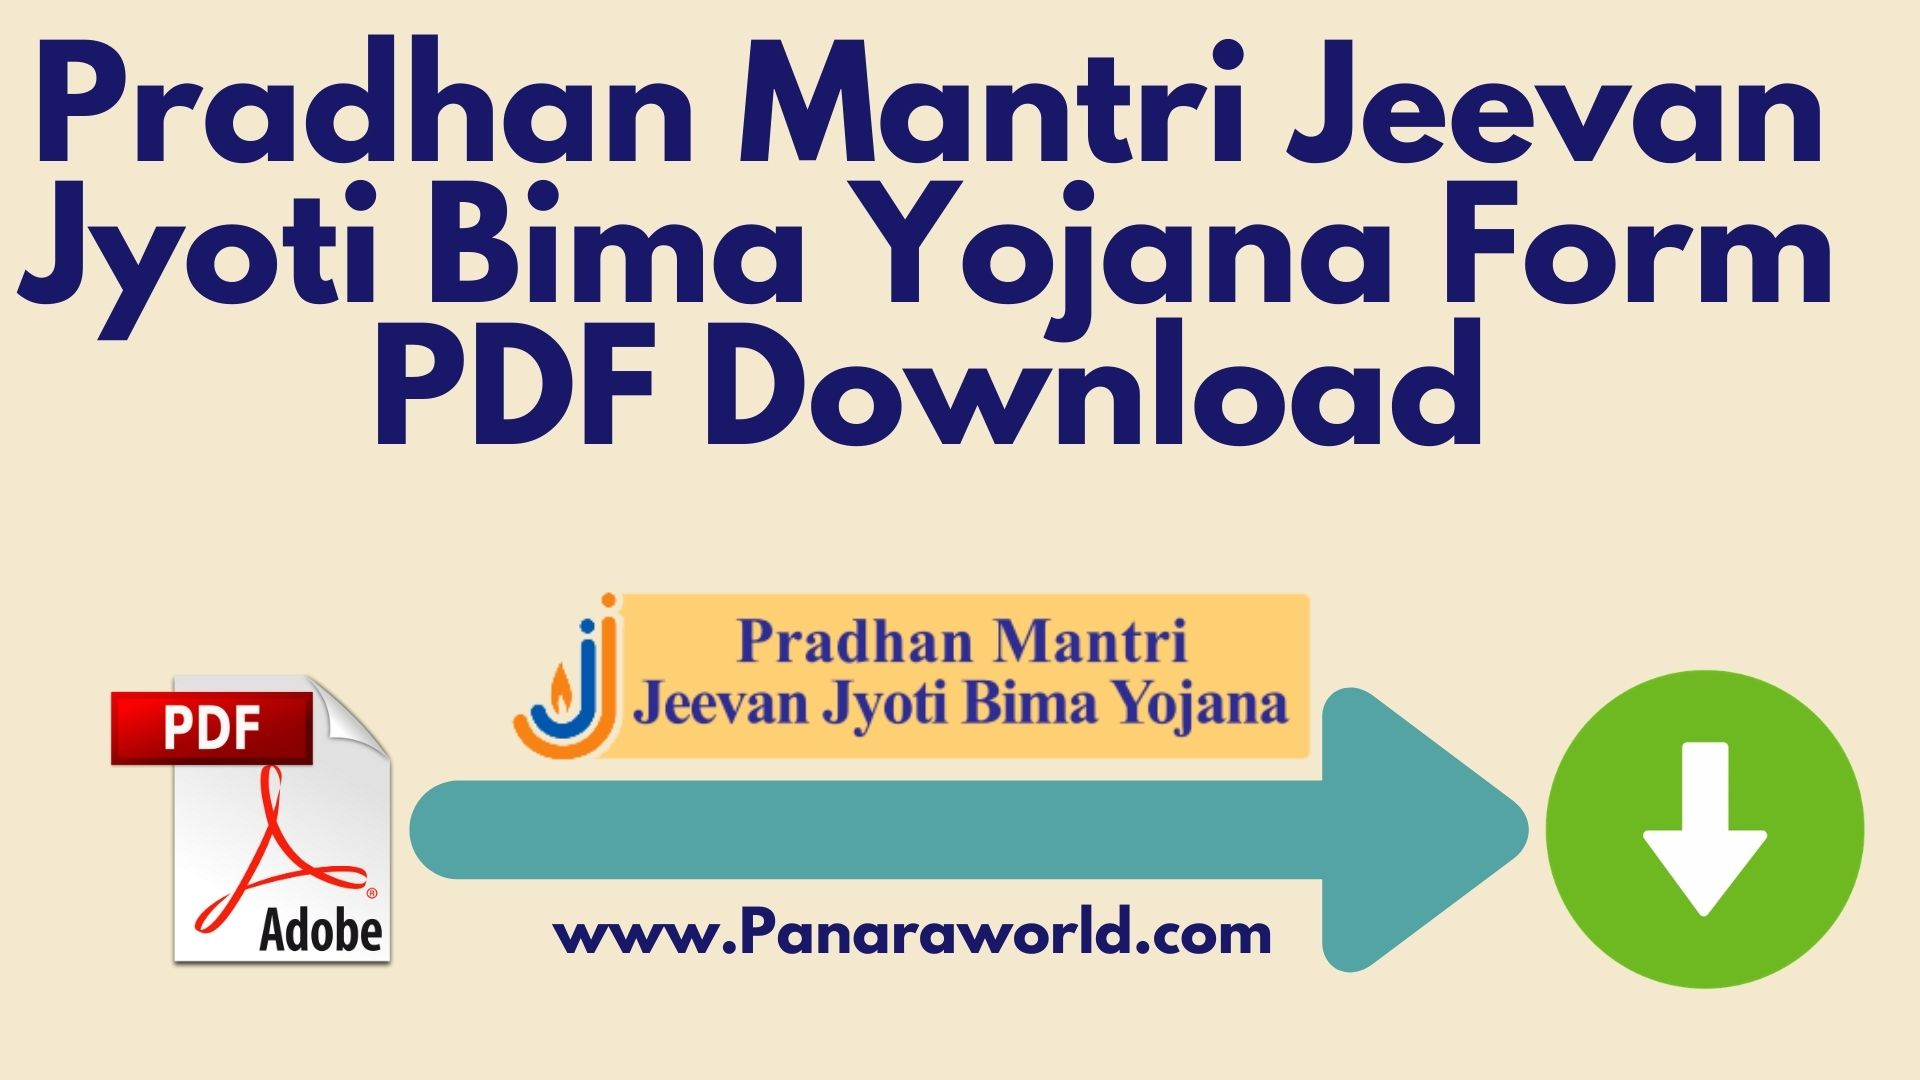 Pradhan Mantri Jeevan Jyoti Bima Yojana Form PDF Download